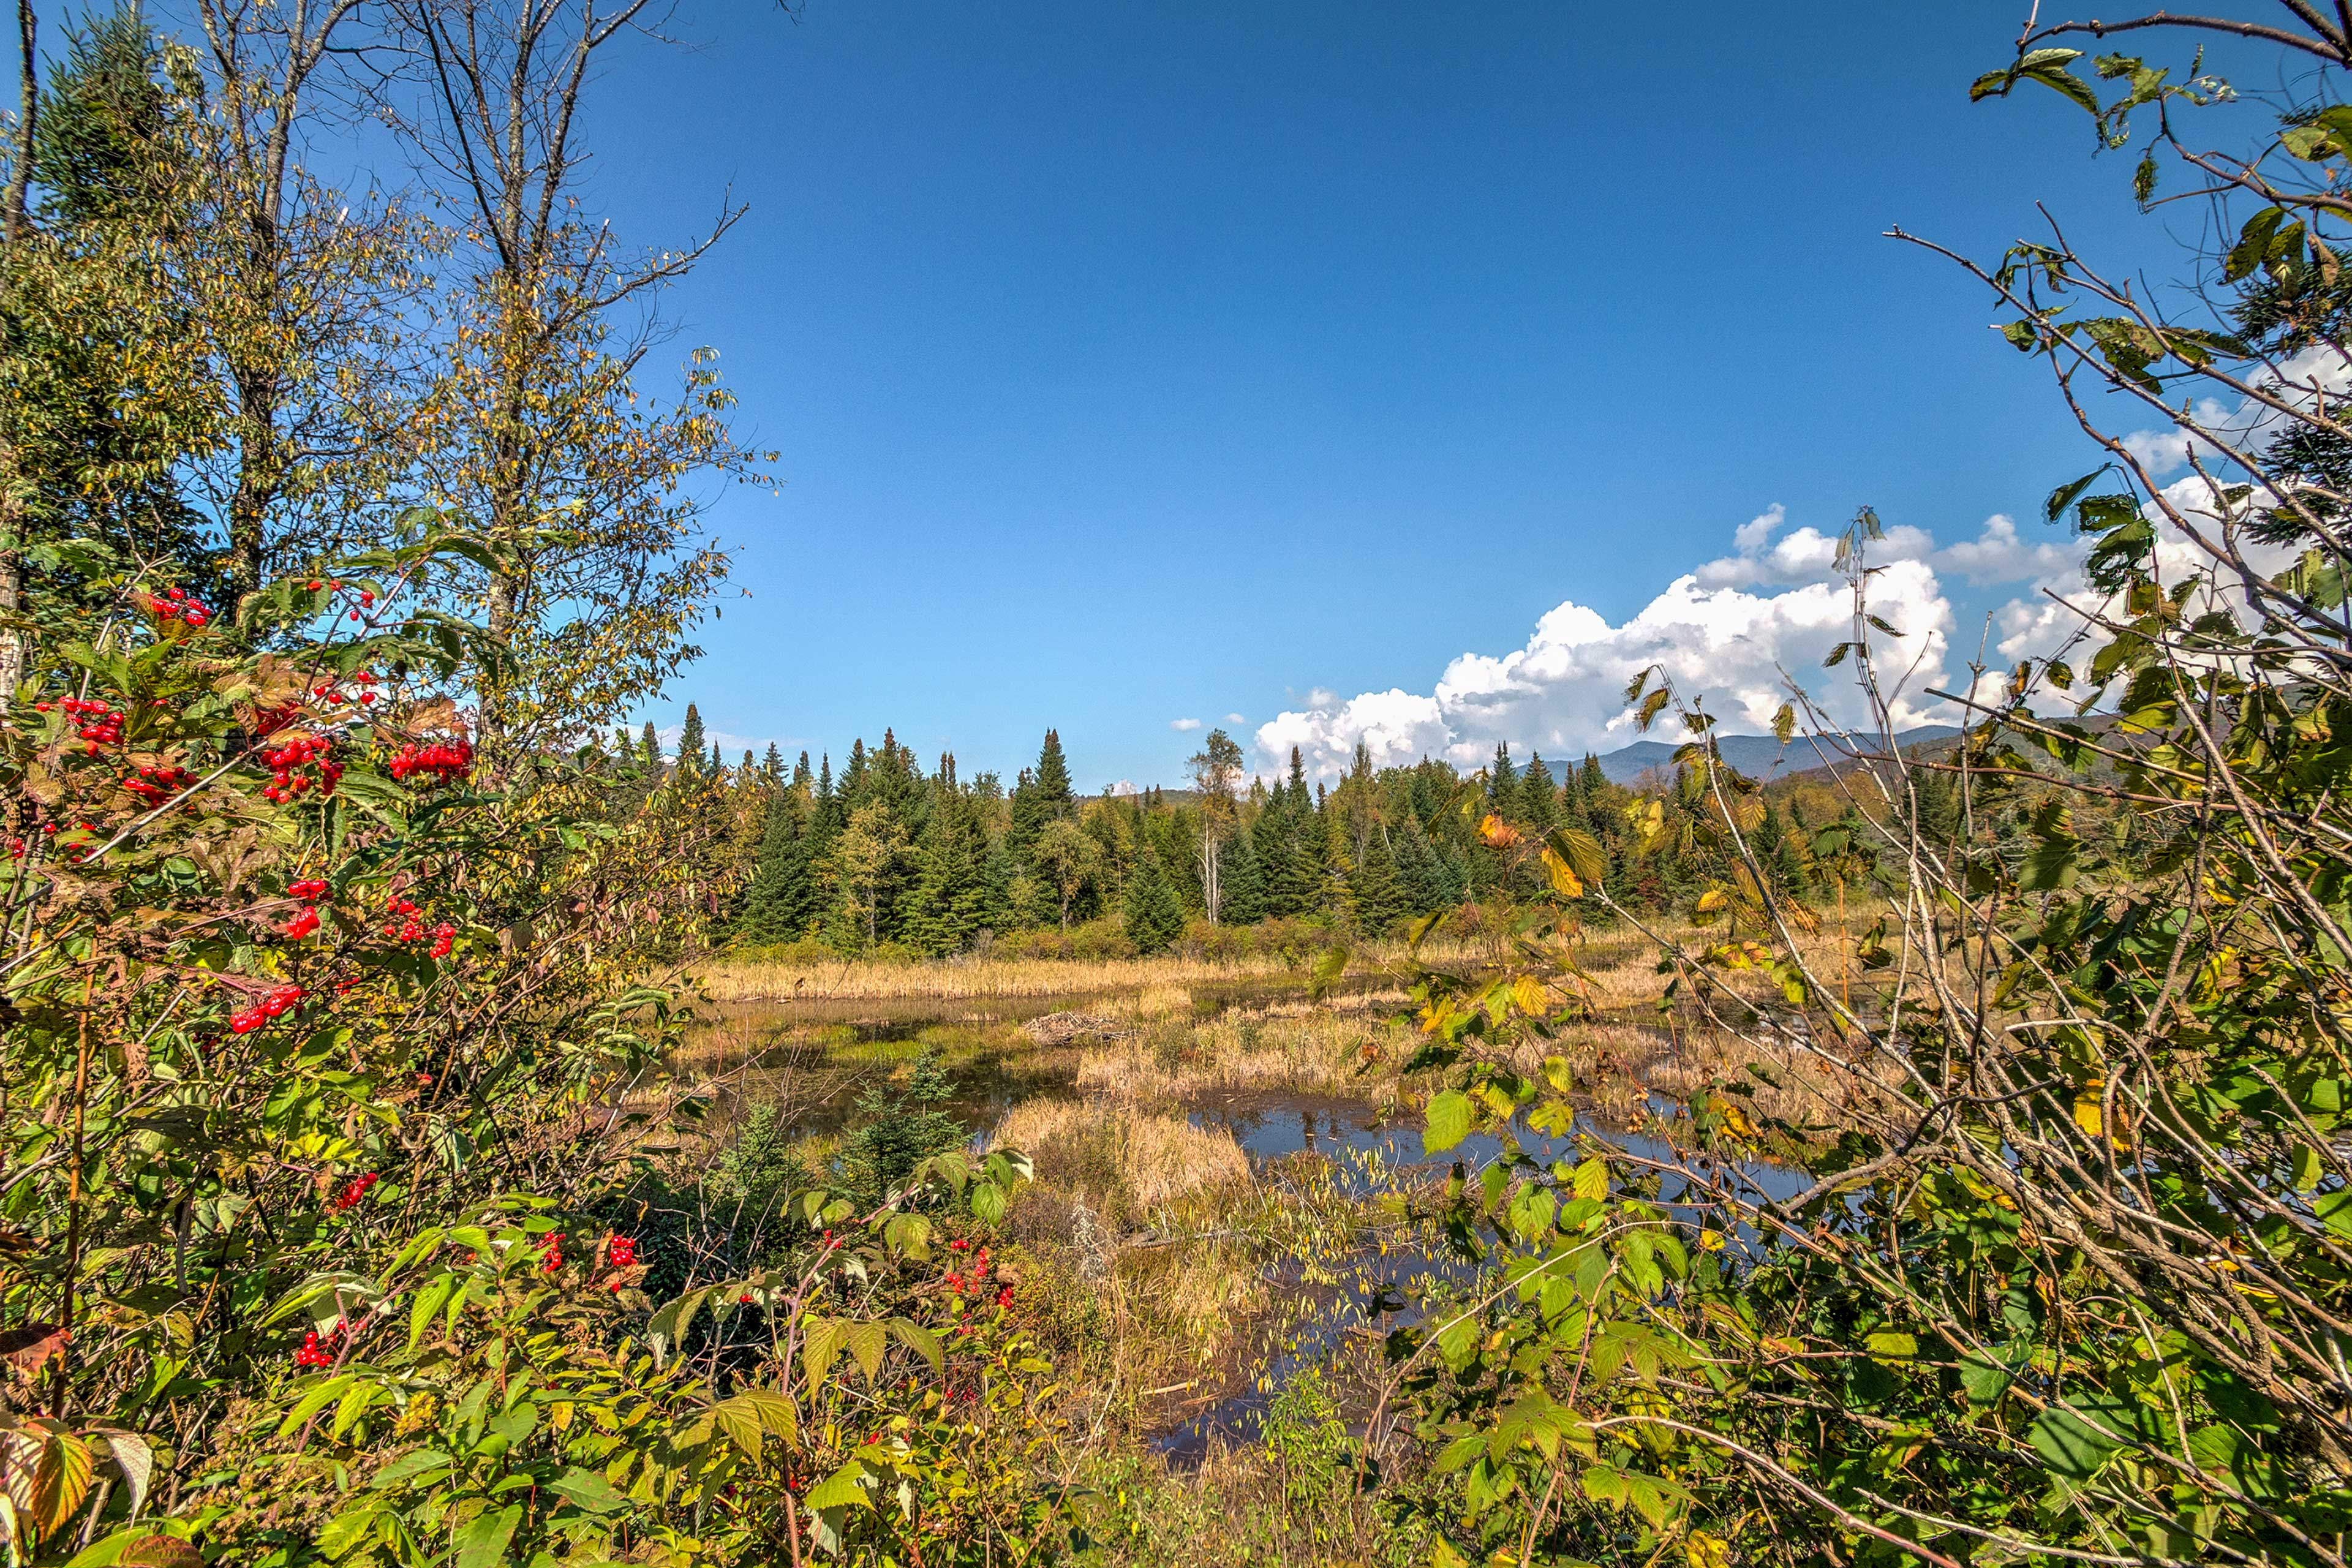 Gorgeous views of the surrounding forest and pond will put you at ease.